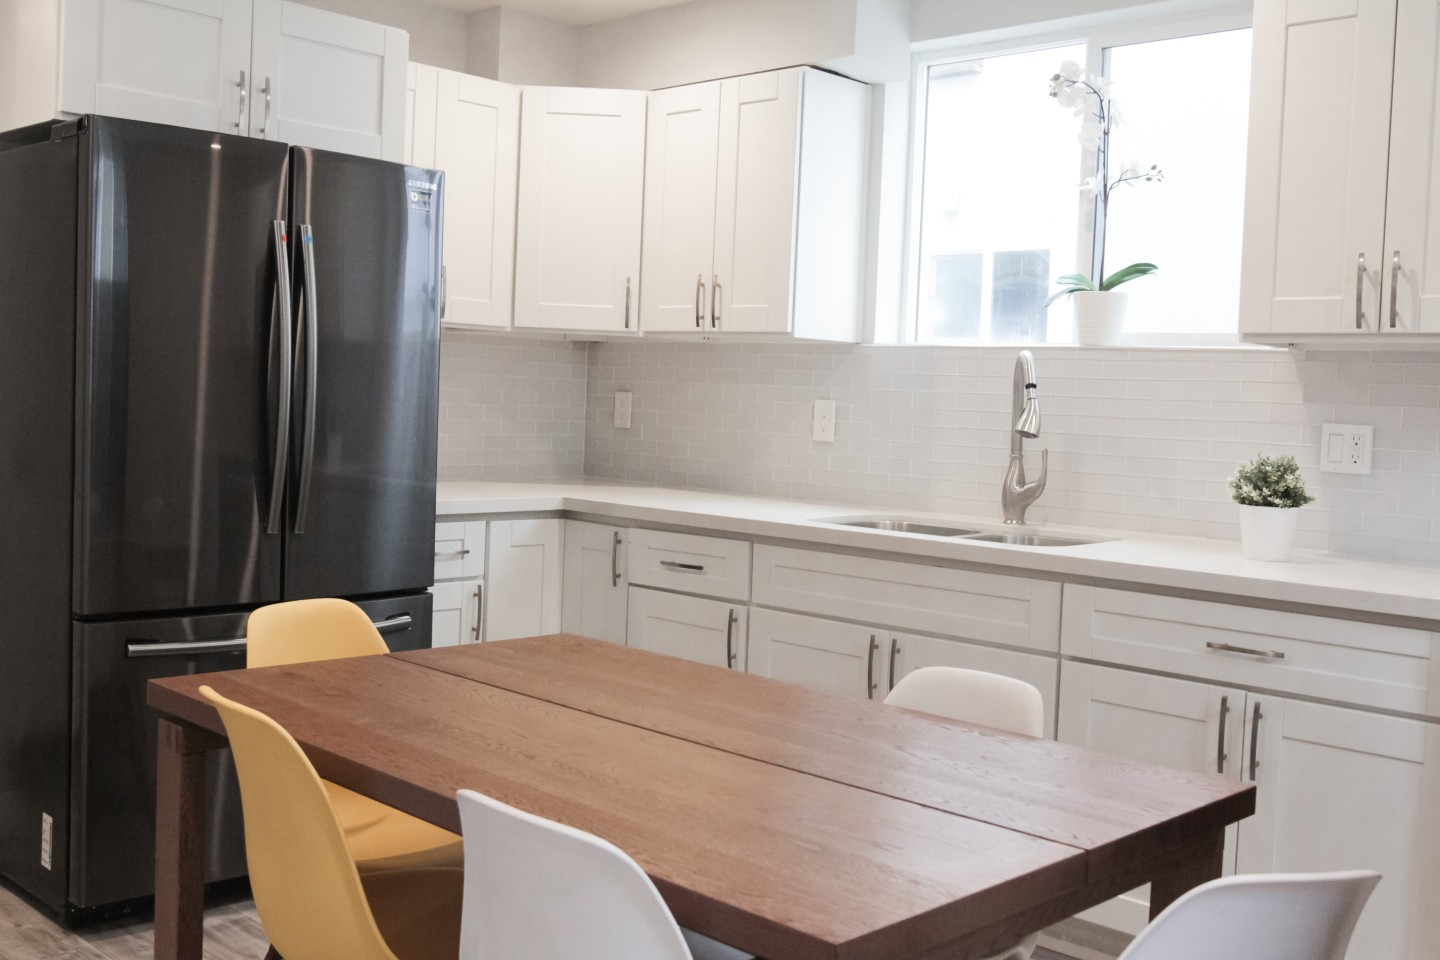 kitchen with brown table and black fridge